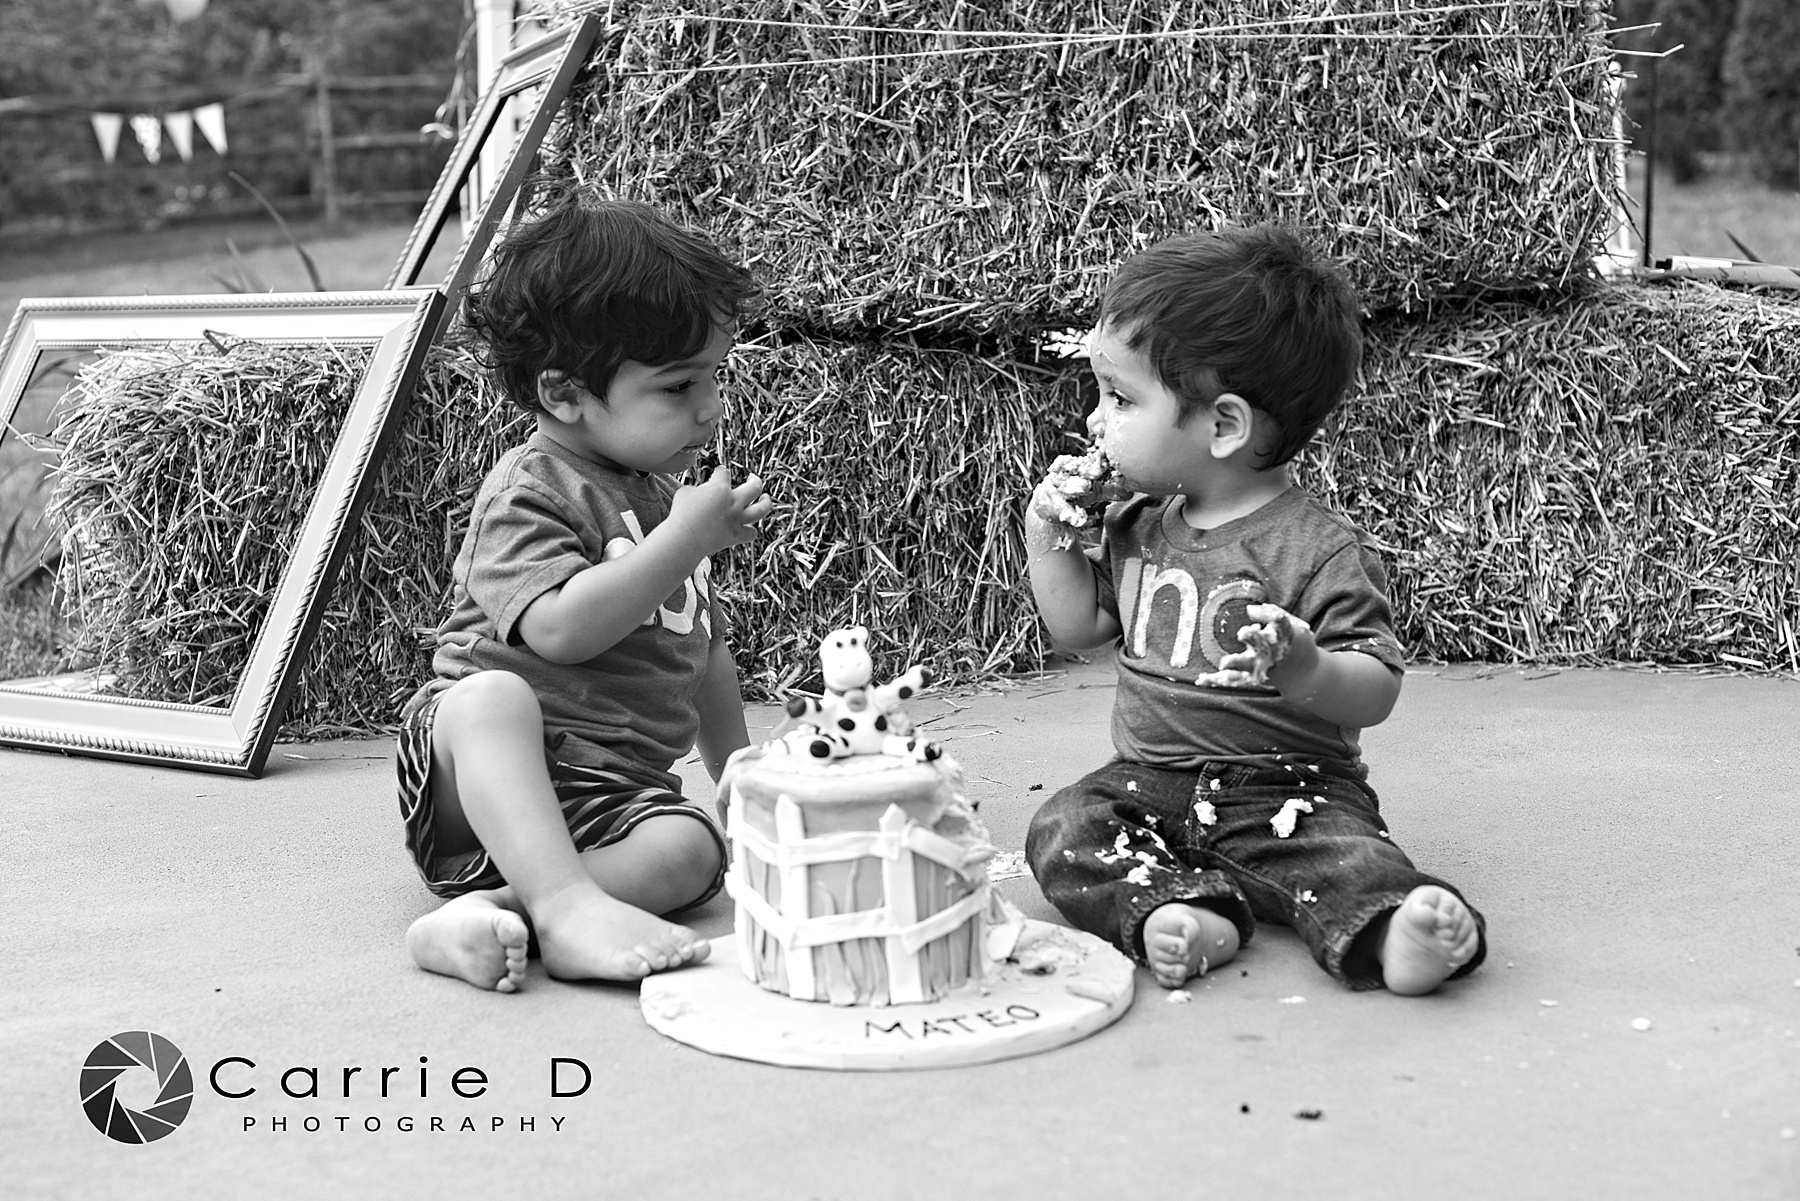 Delaware Birthday Party Photographer – Maryland Birthday Party Photographer – Maryland Milestone Photographer – Delaware Milestone Photographer – Maryland Family Photographer – Delaware Family Photographer – Maryland Sibling Photographer – Delaware Sibling Photographer – Maryland Child Photographer – Delaware Child Photographer – Maryland Portrait Photographer – Delaware Portrait Photographer – Natural Light Photography – Delaware Cake Crash Photographer – Maryland Cake Crash Photographer – Maryland Natural Light Photographer – Delaware Natural Light Photographer – Delaware Birthday Photographer – Maryland Birthday Photographer - 2014-06-13_0031